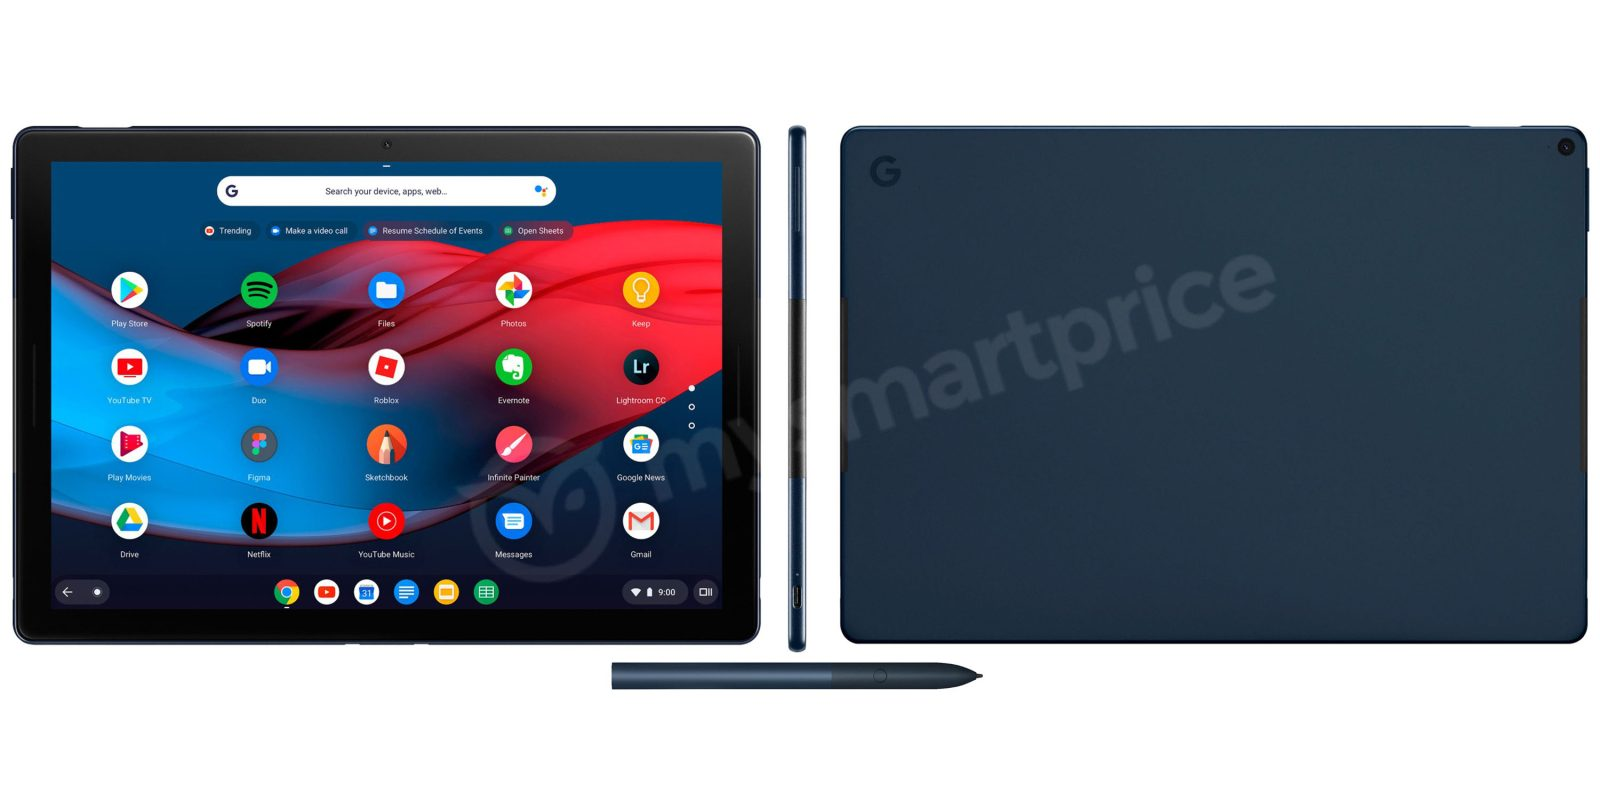 Google Pixel Slate images show off the hardware, keyboard - 9to5Google